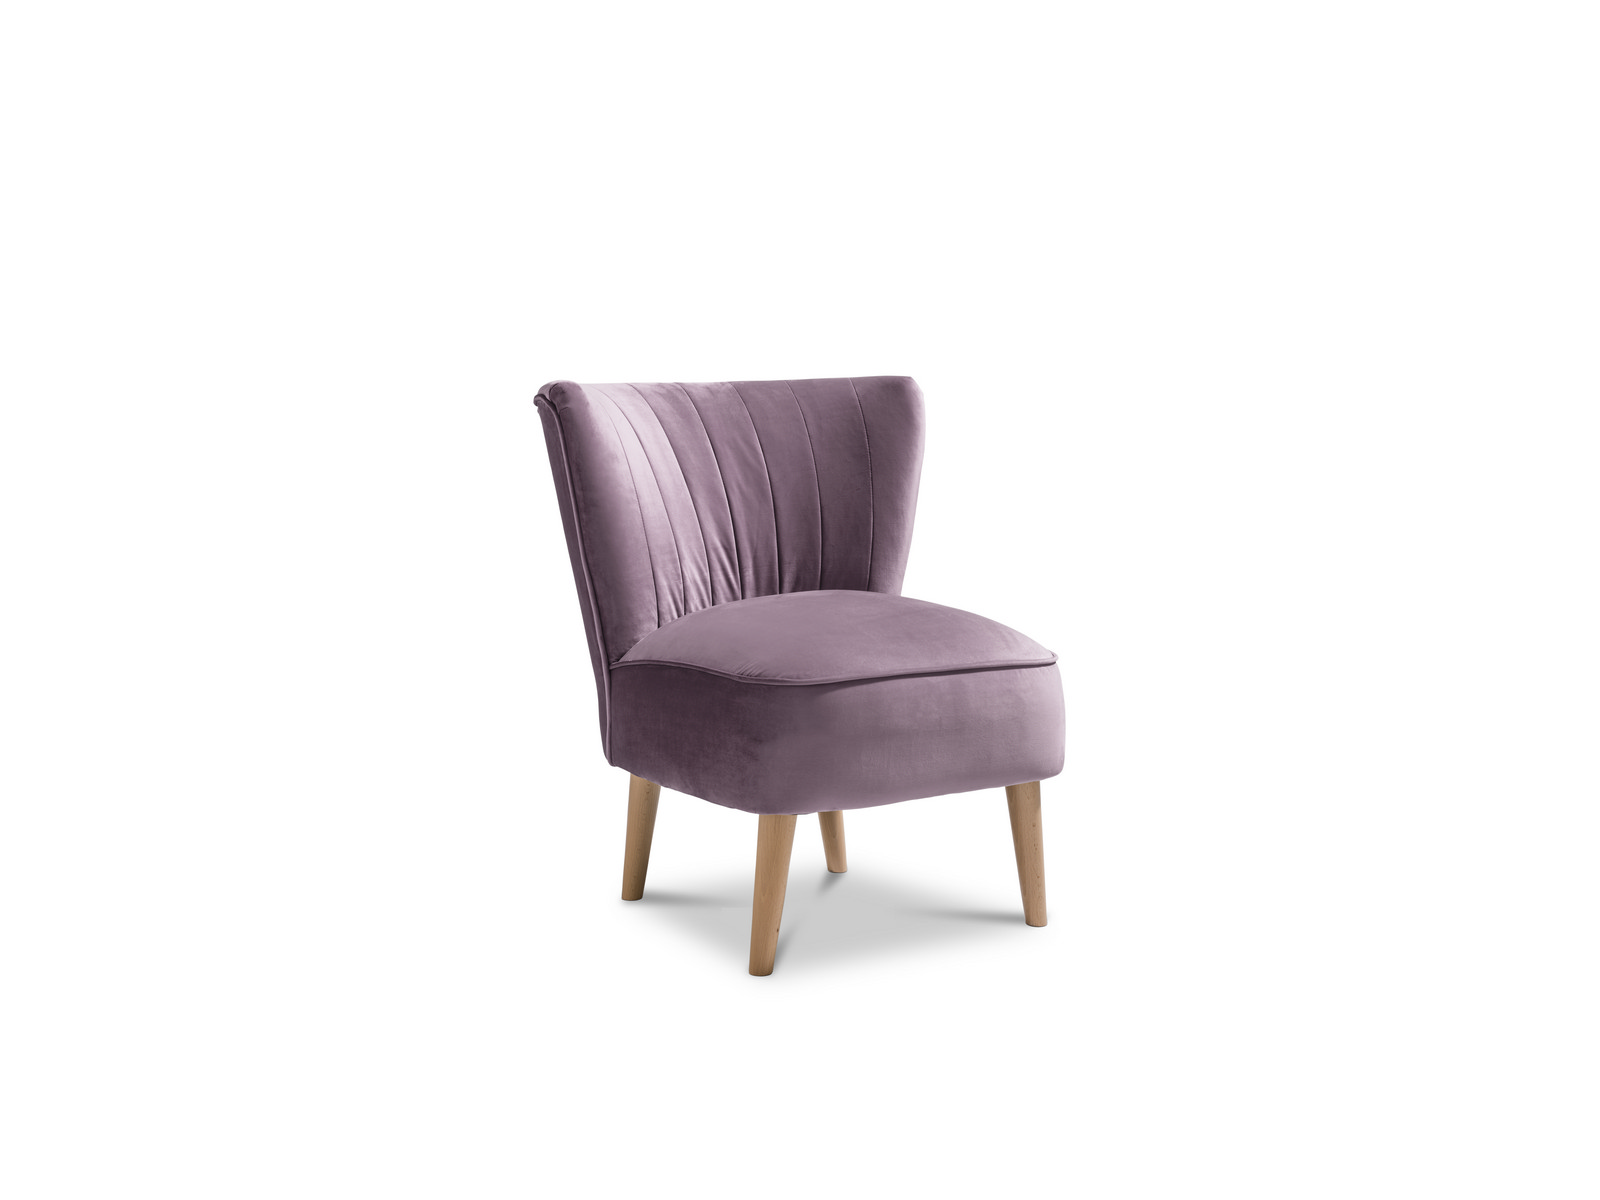 Picture of: Malmesbury Accent Chair Plush Lilac Light Legs Fabric Armchair 5055641339922 Ebay